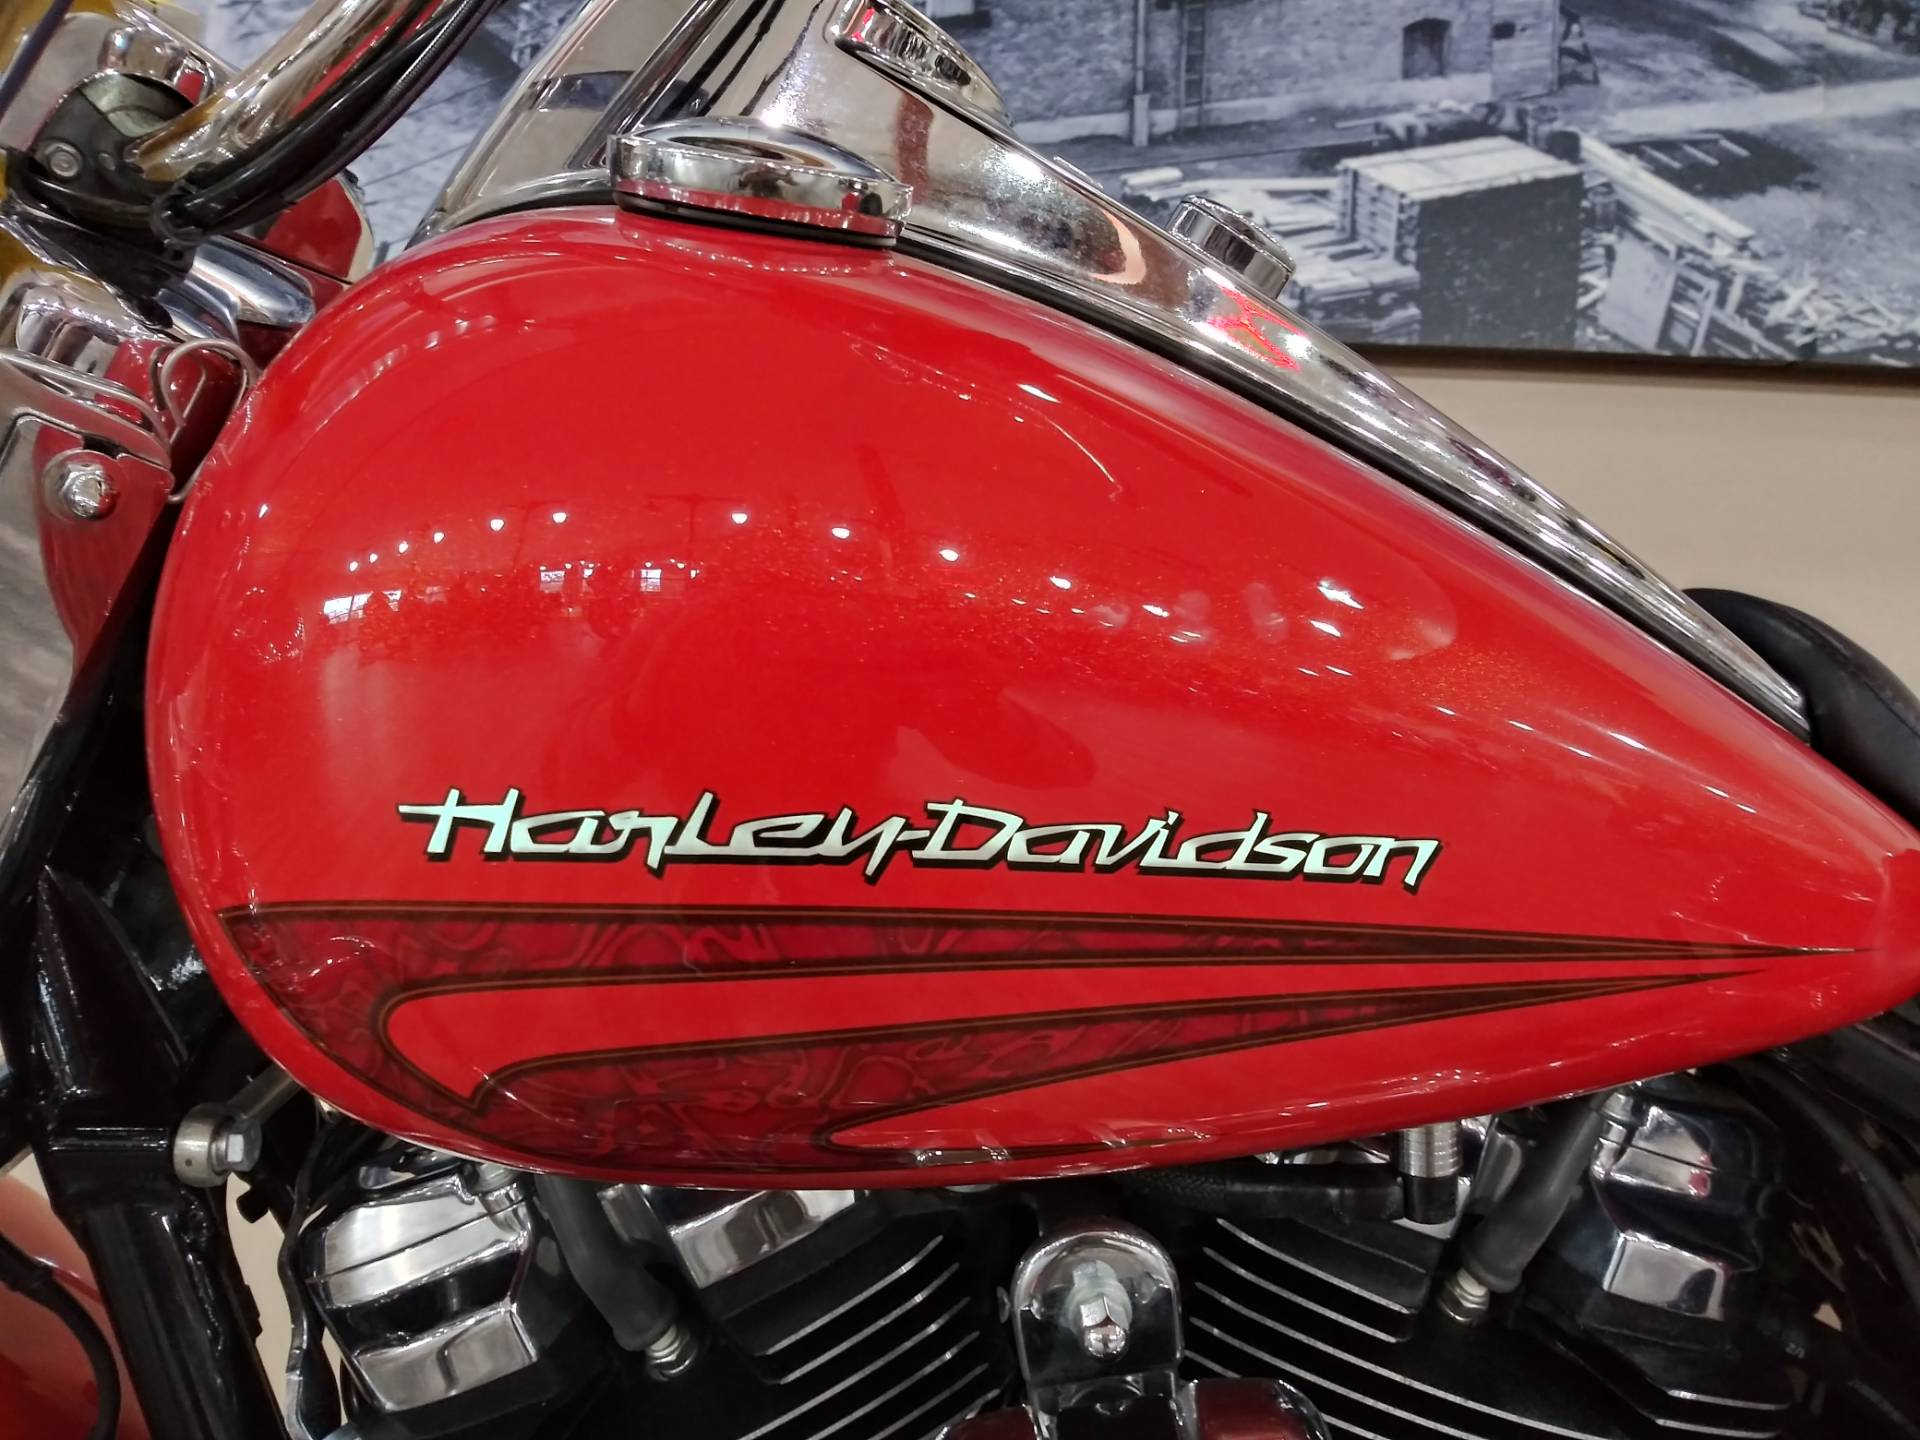 2017 Harley-Davidson Road King® in Knoxville, Tennessee - Photo 13